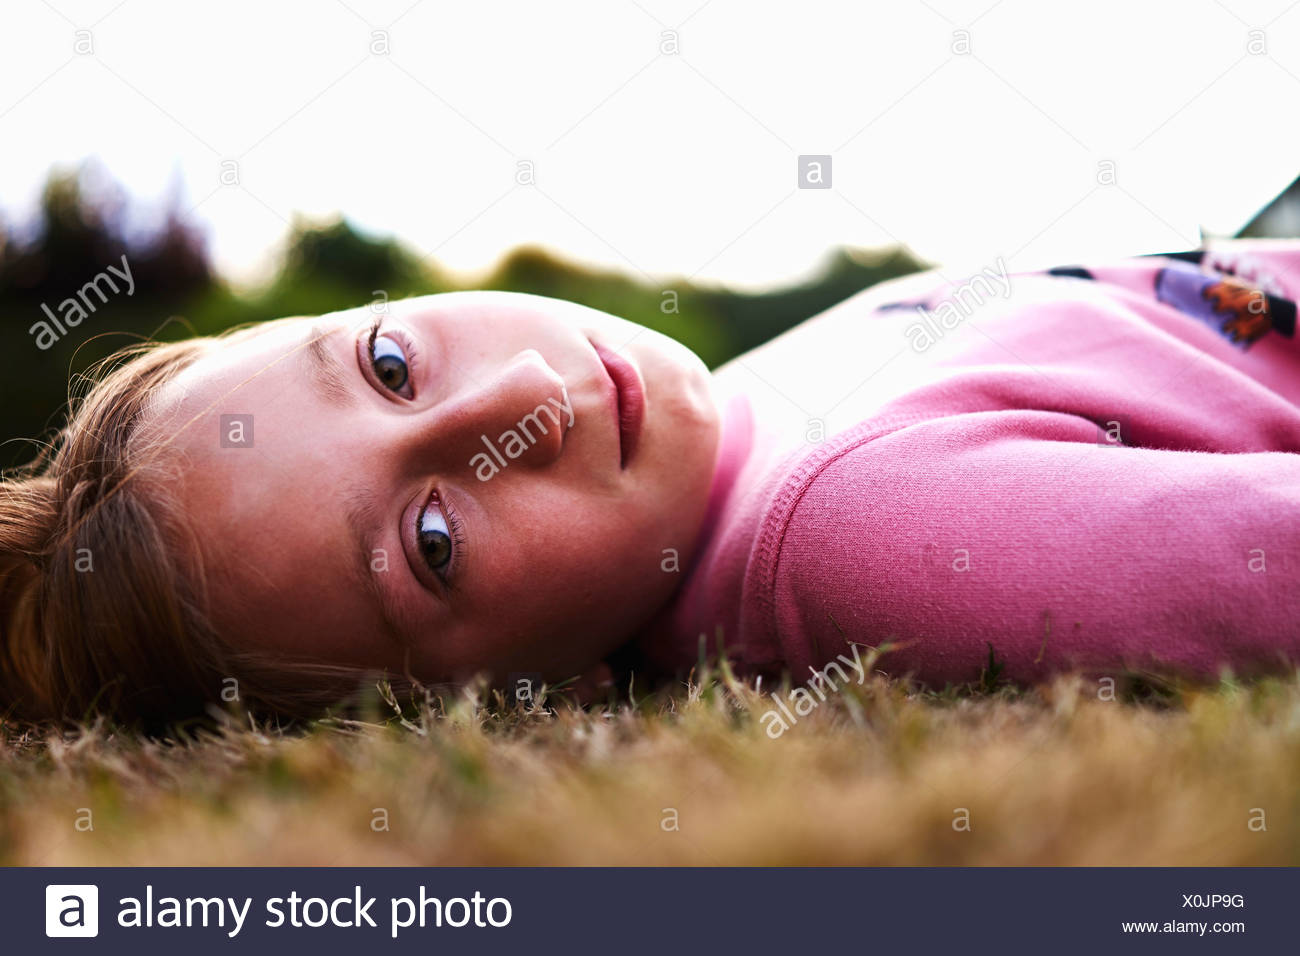 Close up portrait of a girl lying on grass - Stock Image